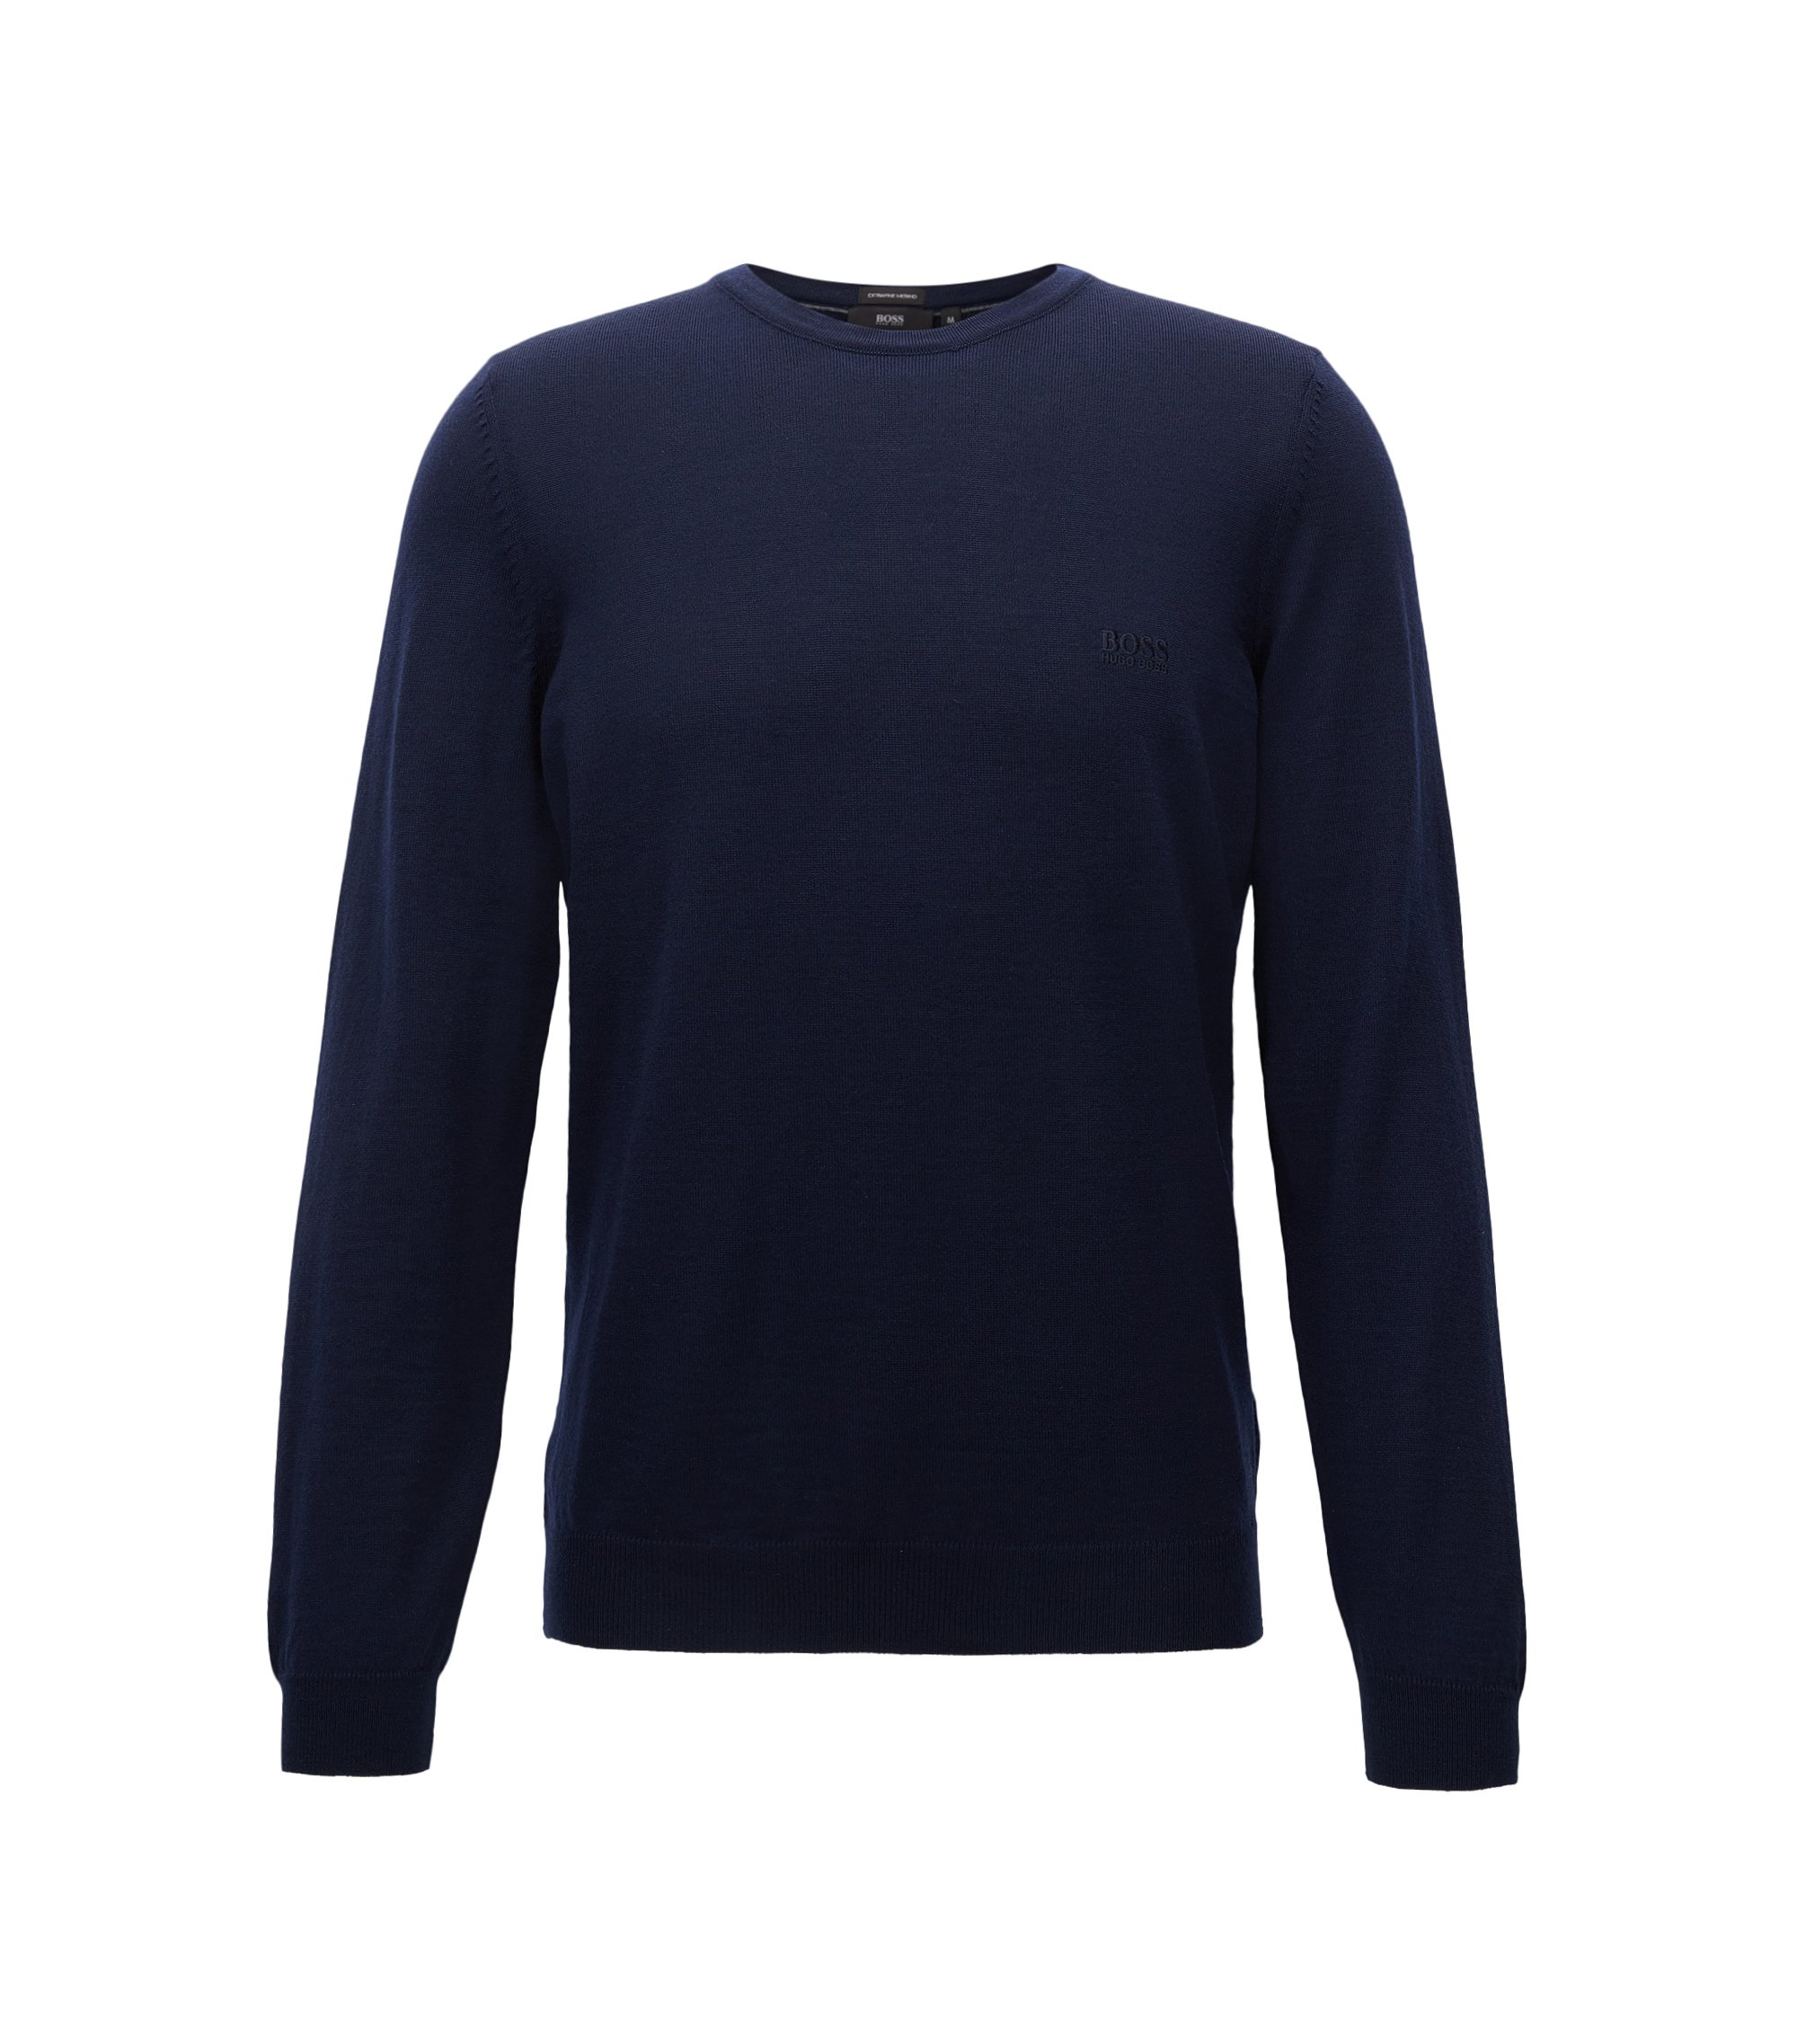 Crew-neck sweater in virgin wool jersey, Dark Blue